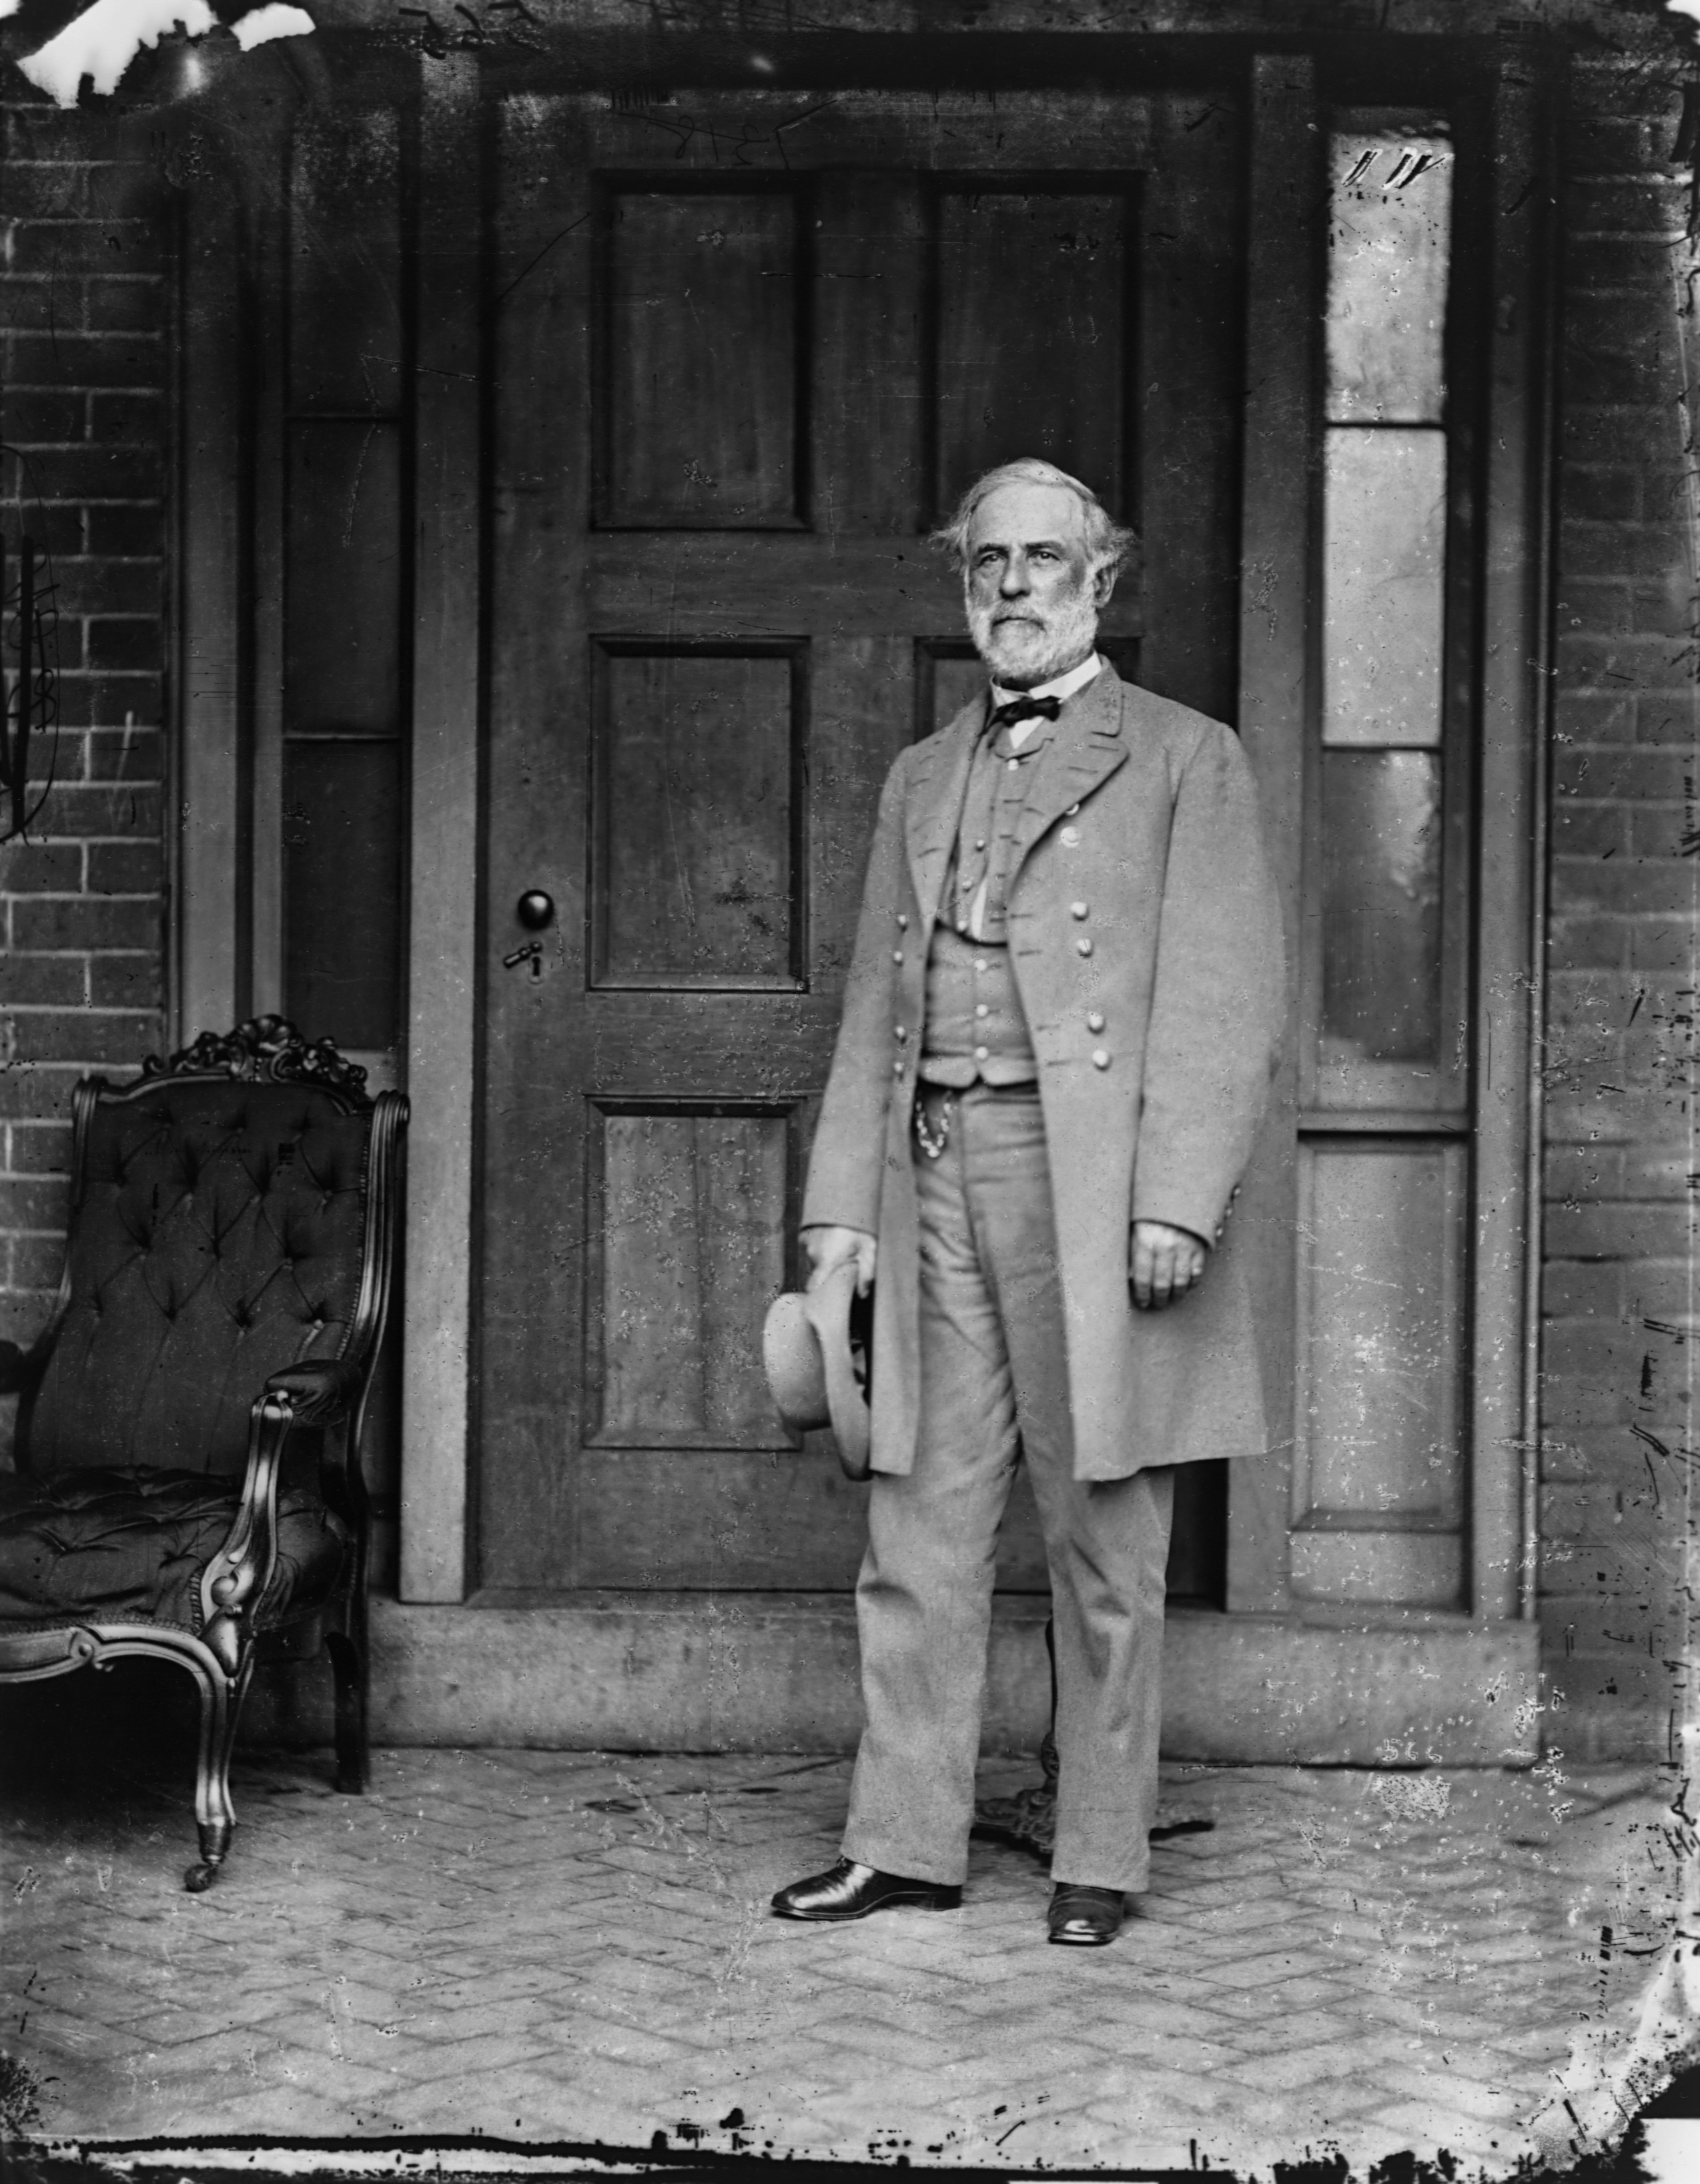 a biography of robert e lee a general of the confederate army in the american civil war In a new biography, robert e lee, roy blount, jr, treats lee as a man of  competing  in american history: revered for his honor, lee resigned his us  army  in the excerpt that follows, the general masses his troops for a battle over  three  it is robert edward lee—hero of the confederacy in the civil war and a  symbol of.